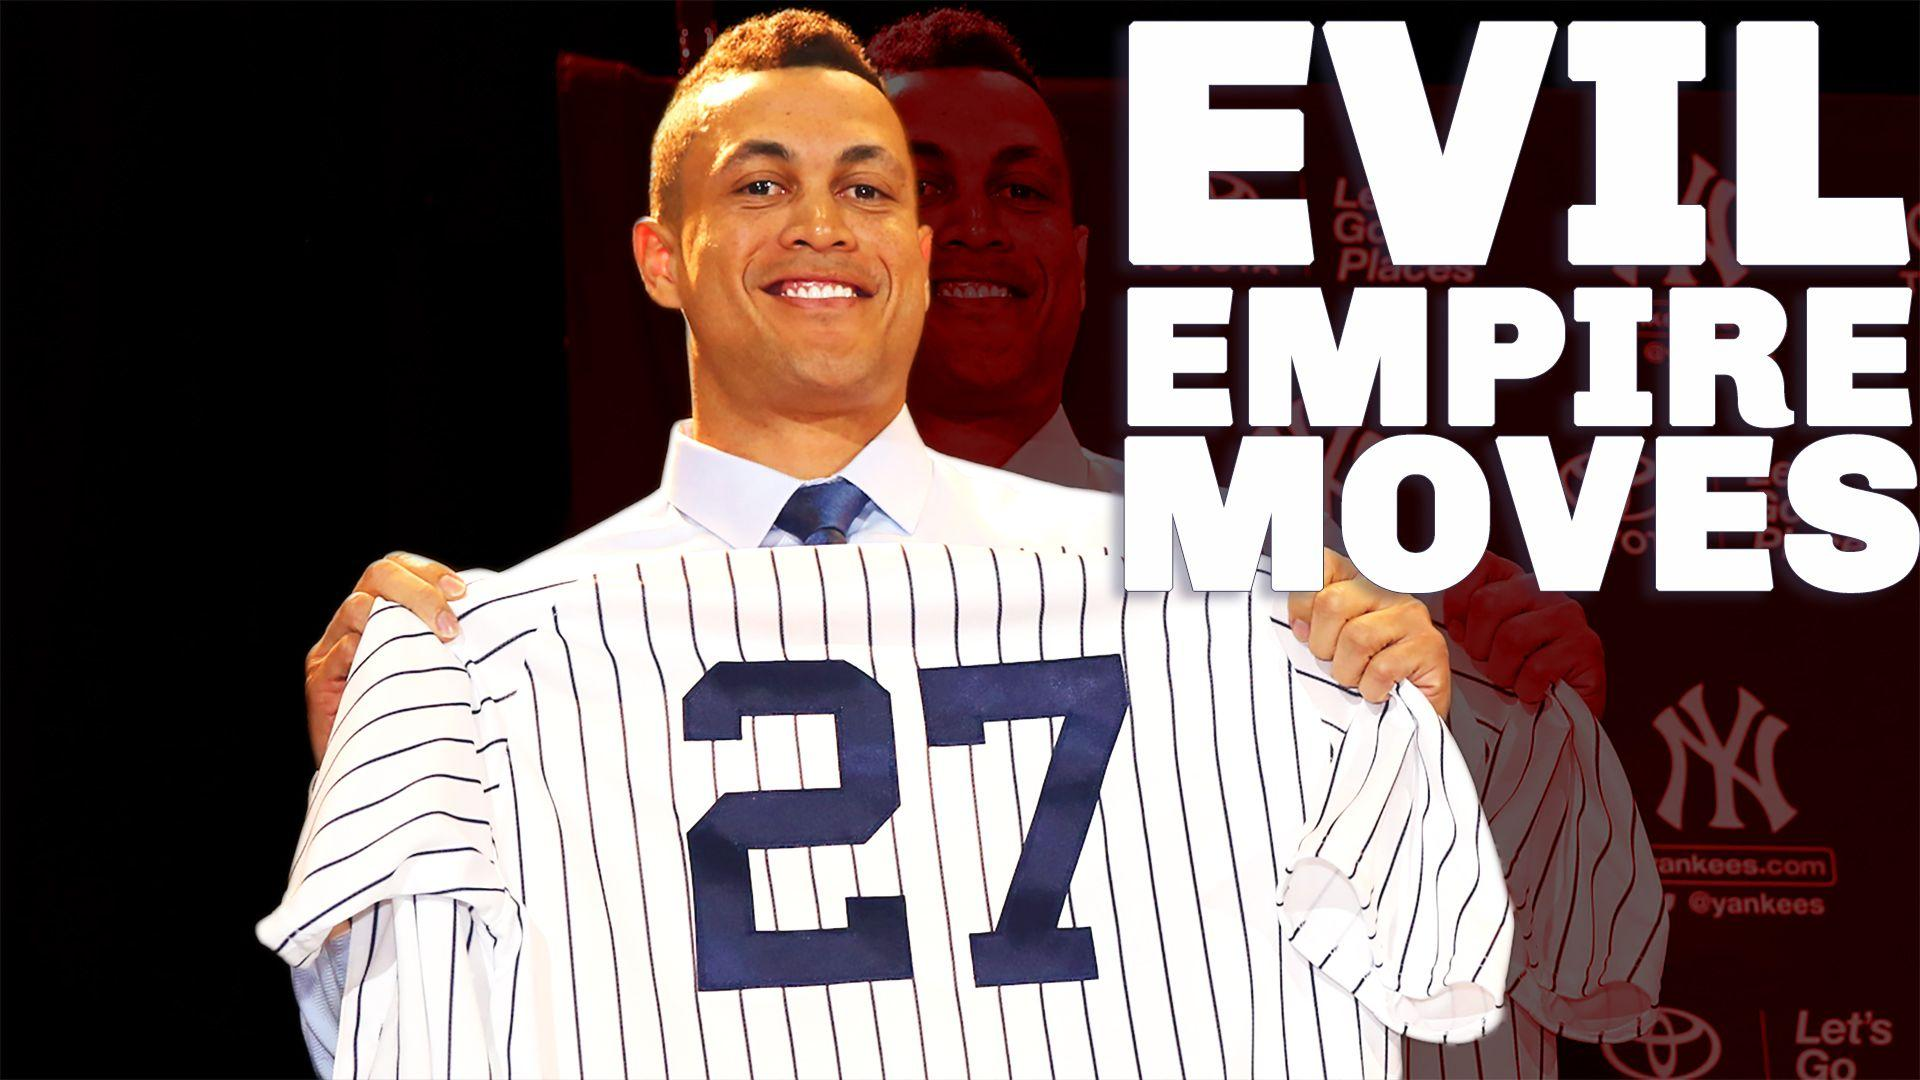 The 11 Most Evil Empire Moves in New York Yankees History